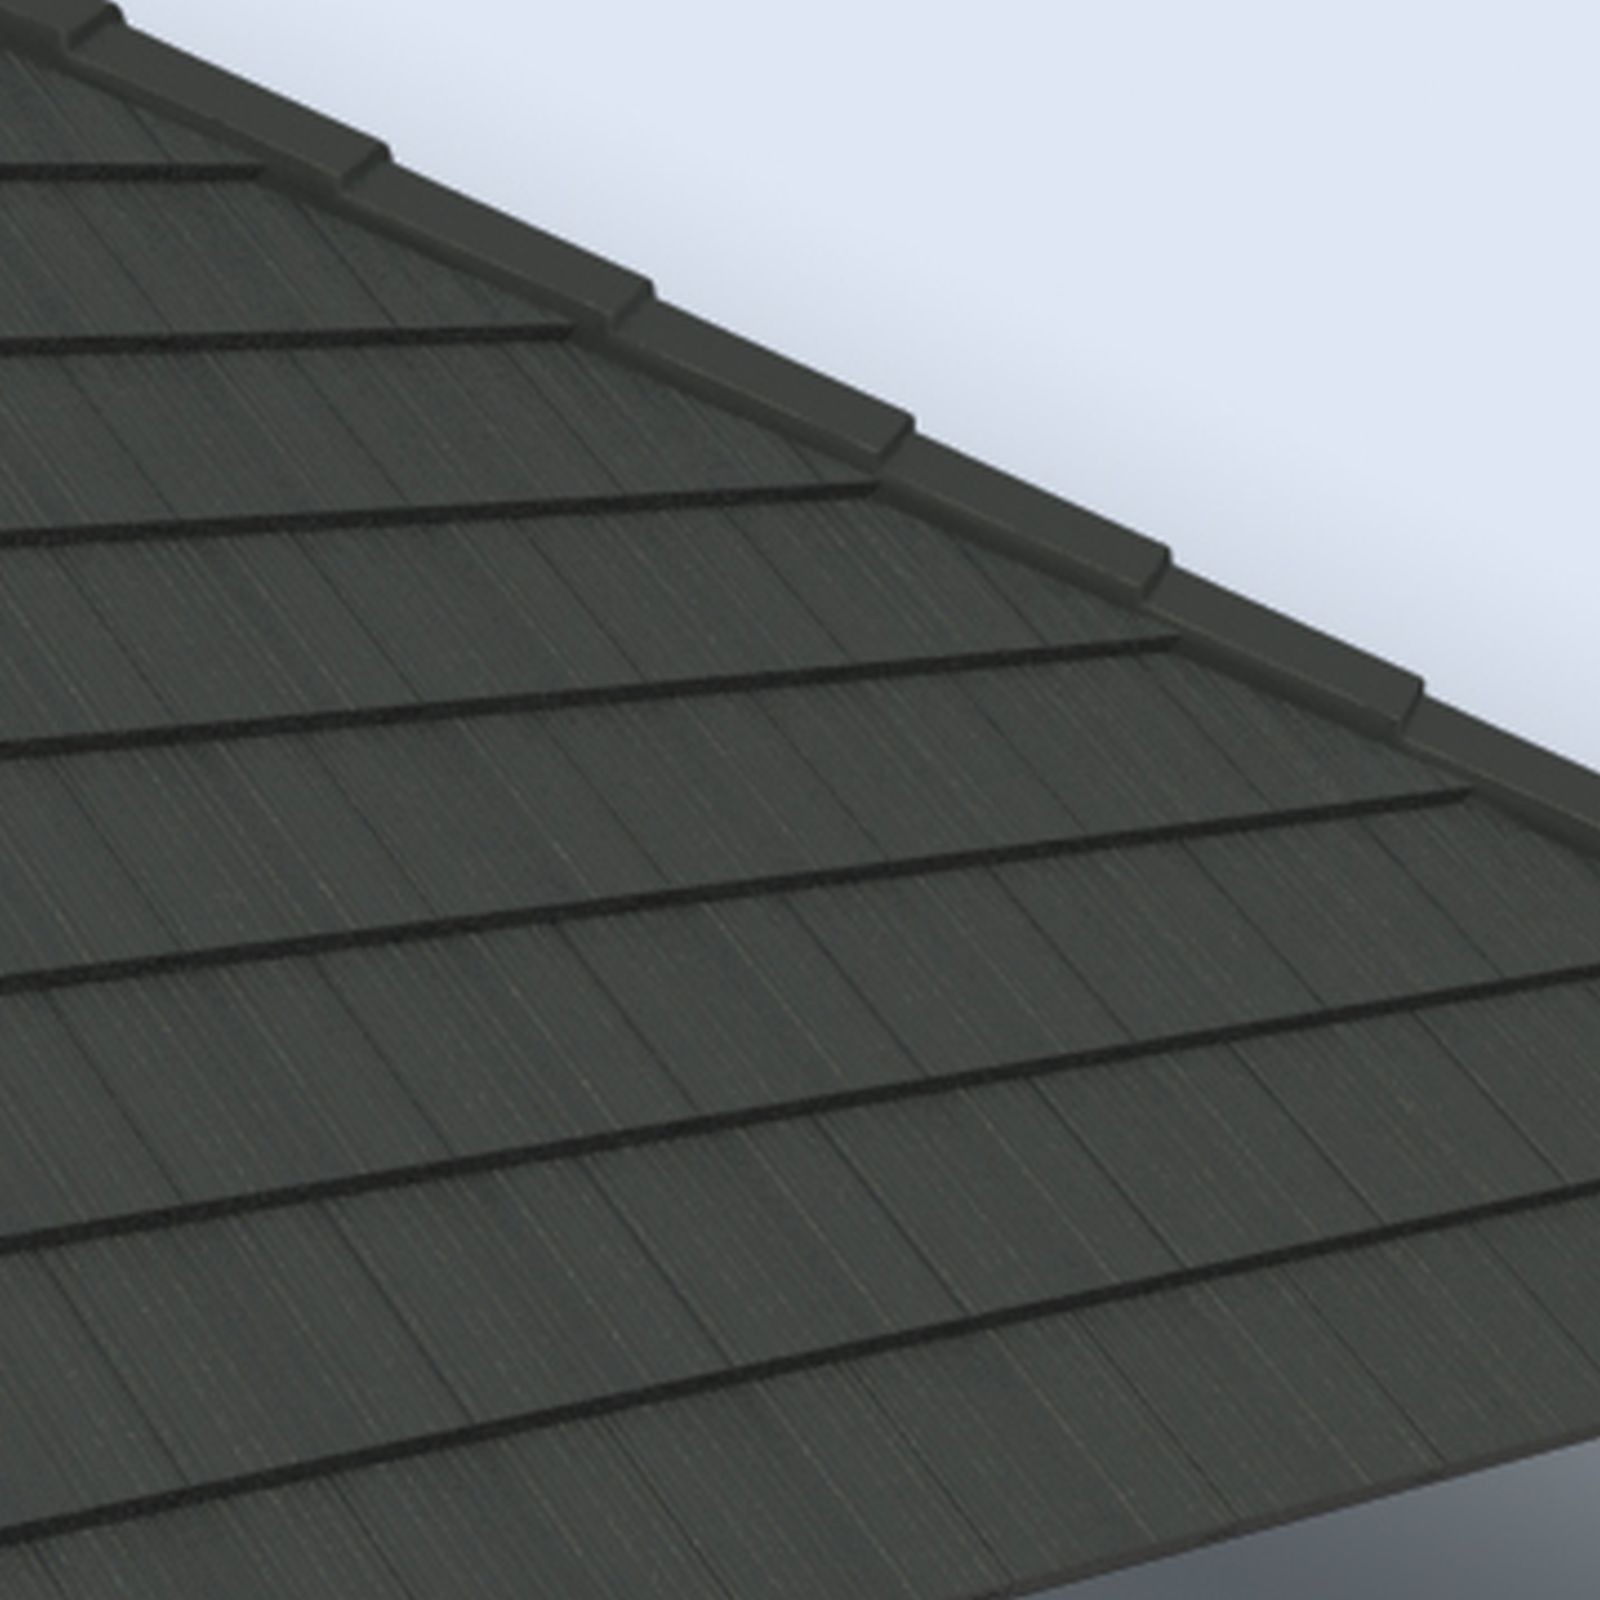 Striata Concrete Roof Tiles Design Content